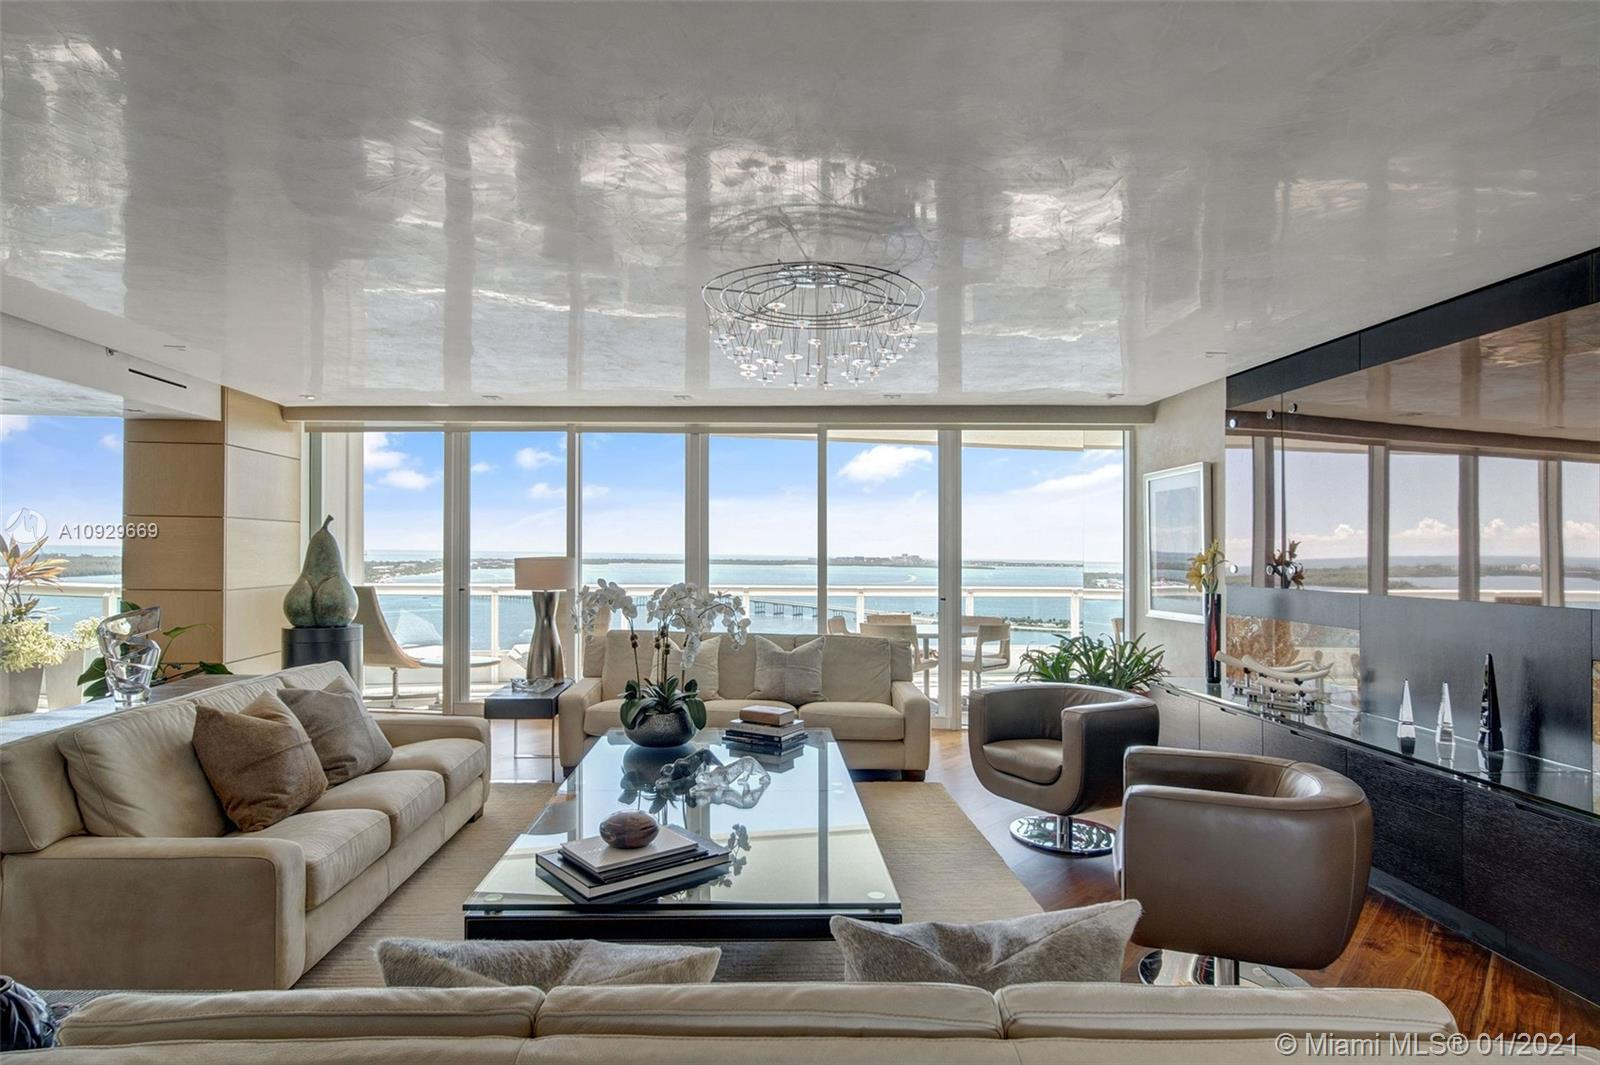 Spectacular oceanfront east-west flow-through condo at Santa Maria, stunning views of Biscayne Bay and Miami skyline. Elegant residence renovated with custom and crafted detail. The rivate elevator opens to the spacious living room with beautiful ocean views and great lighting. Very generous space: 4 bedrooms, 5 1/2 baths, custom kitchen, and closets. Unit 3004 is a smart unit with motorized window treatments, Lutron lighting, and AC controlled from a smart device. 